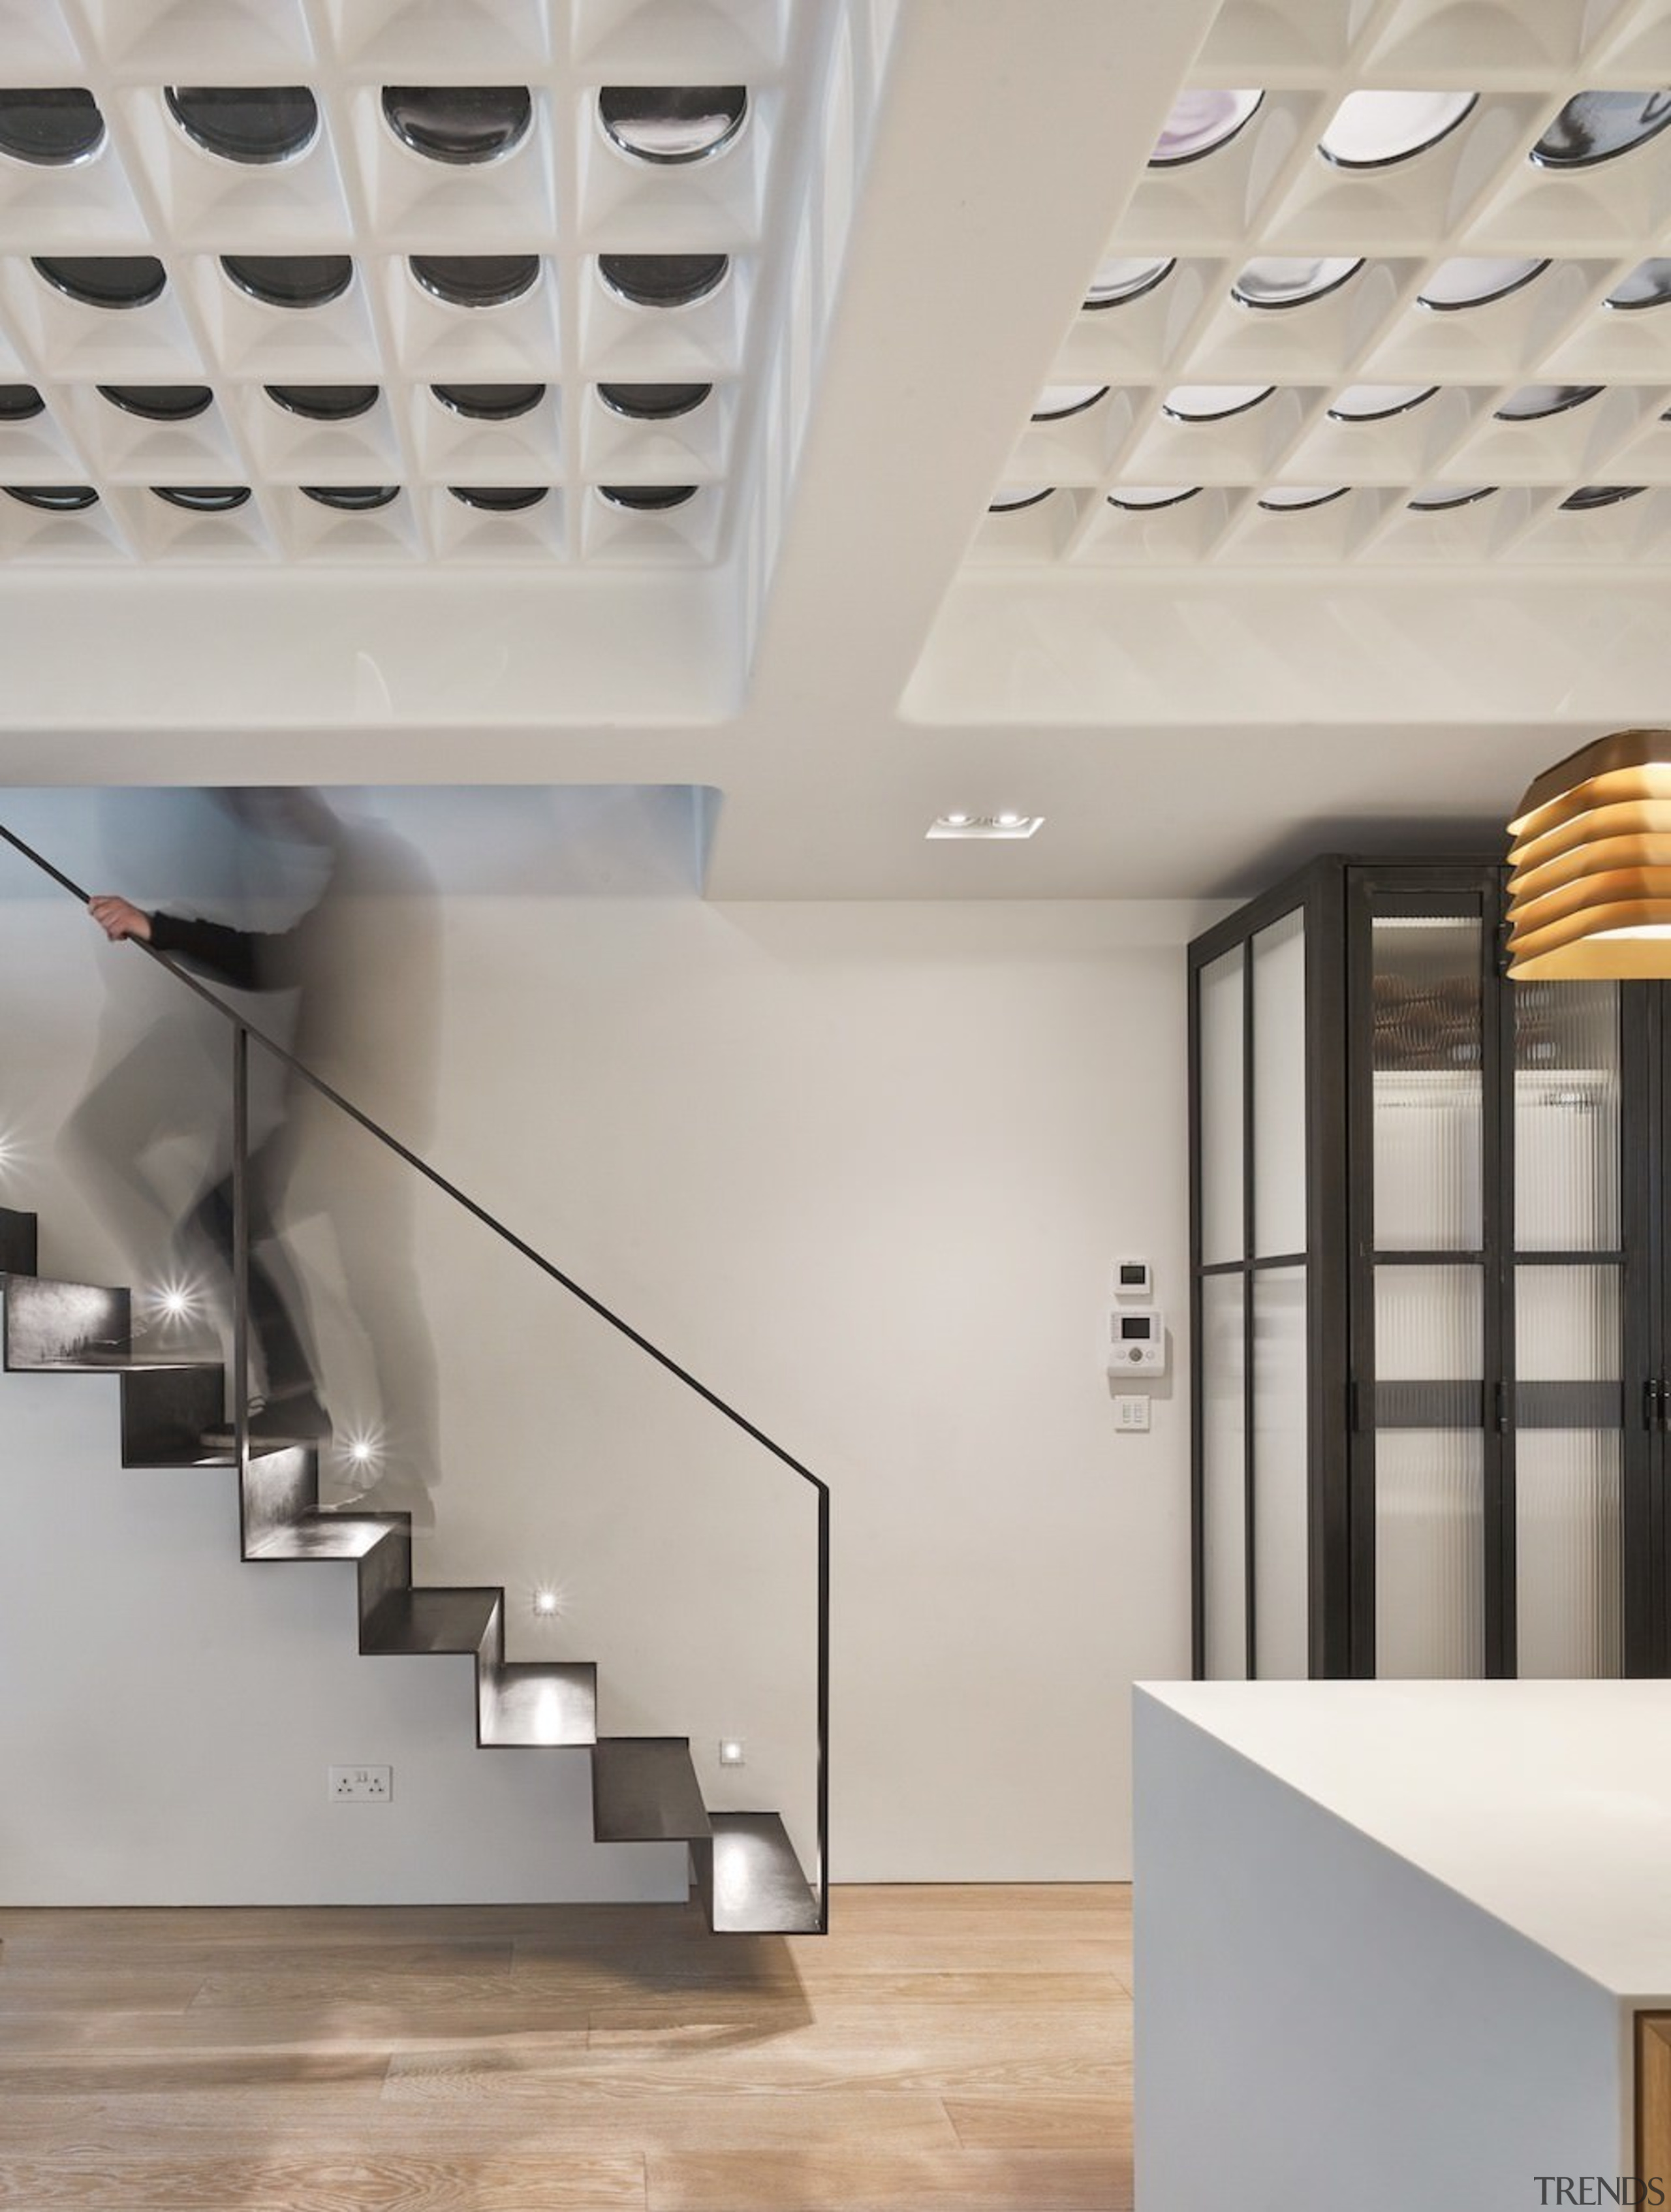 Andy Martin Architecture – Renovation in London - architecture, ceiling, daylighting, interior design, product design, gray